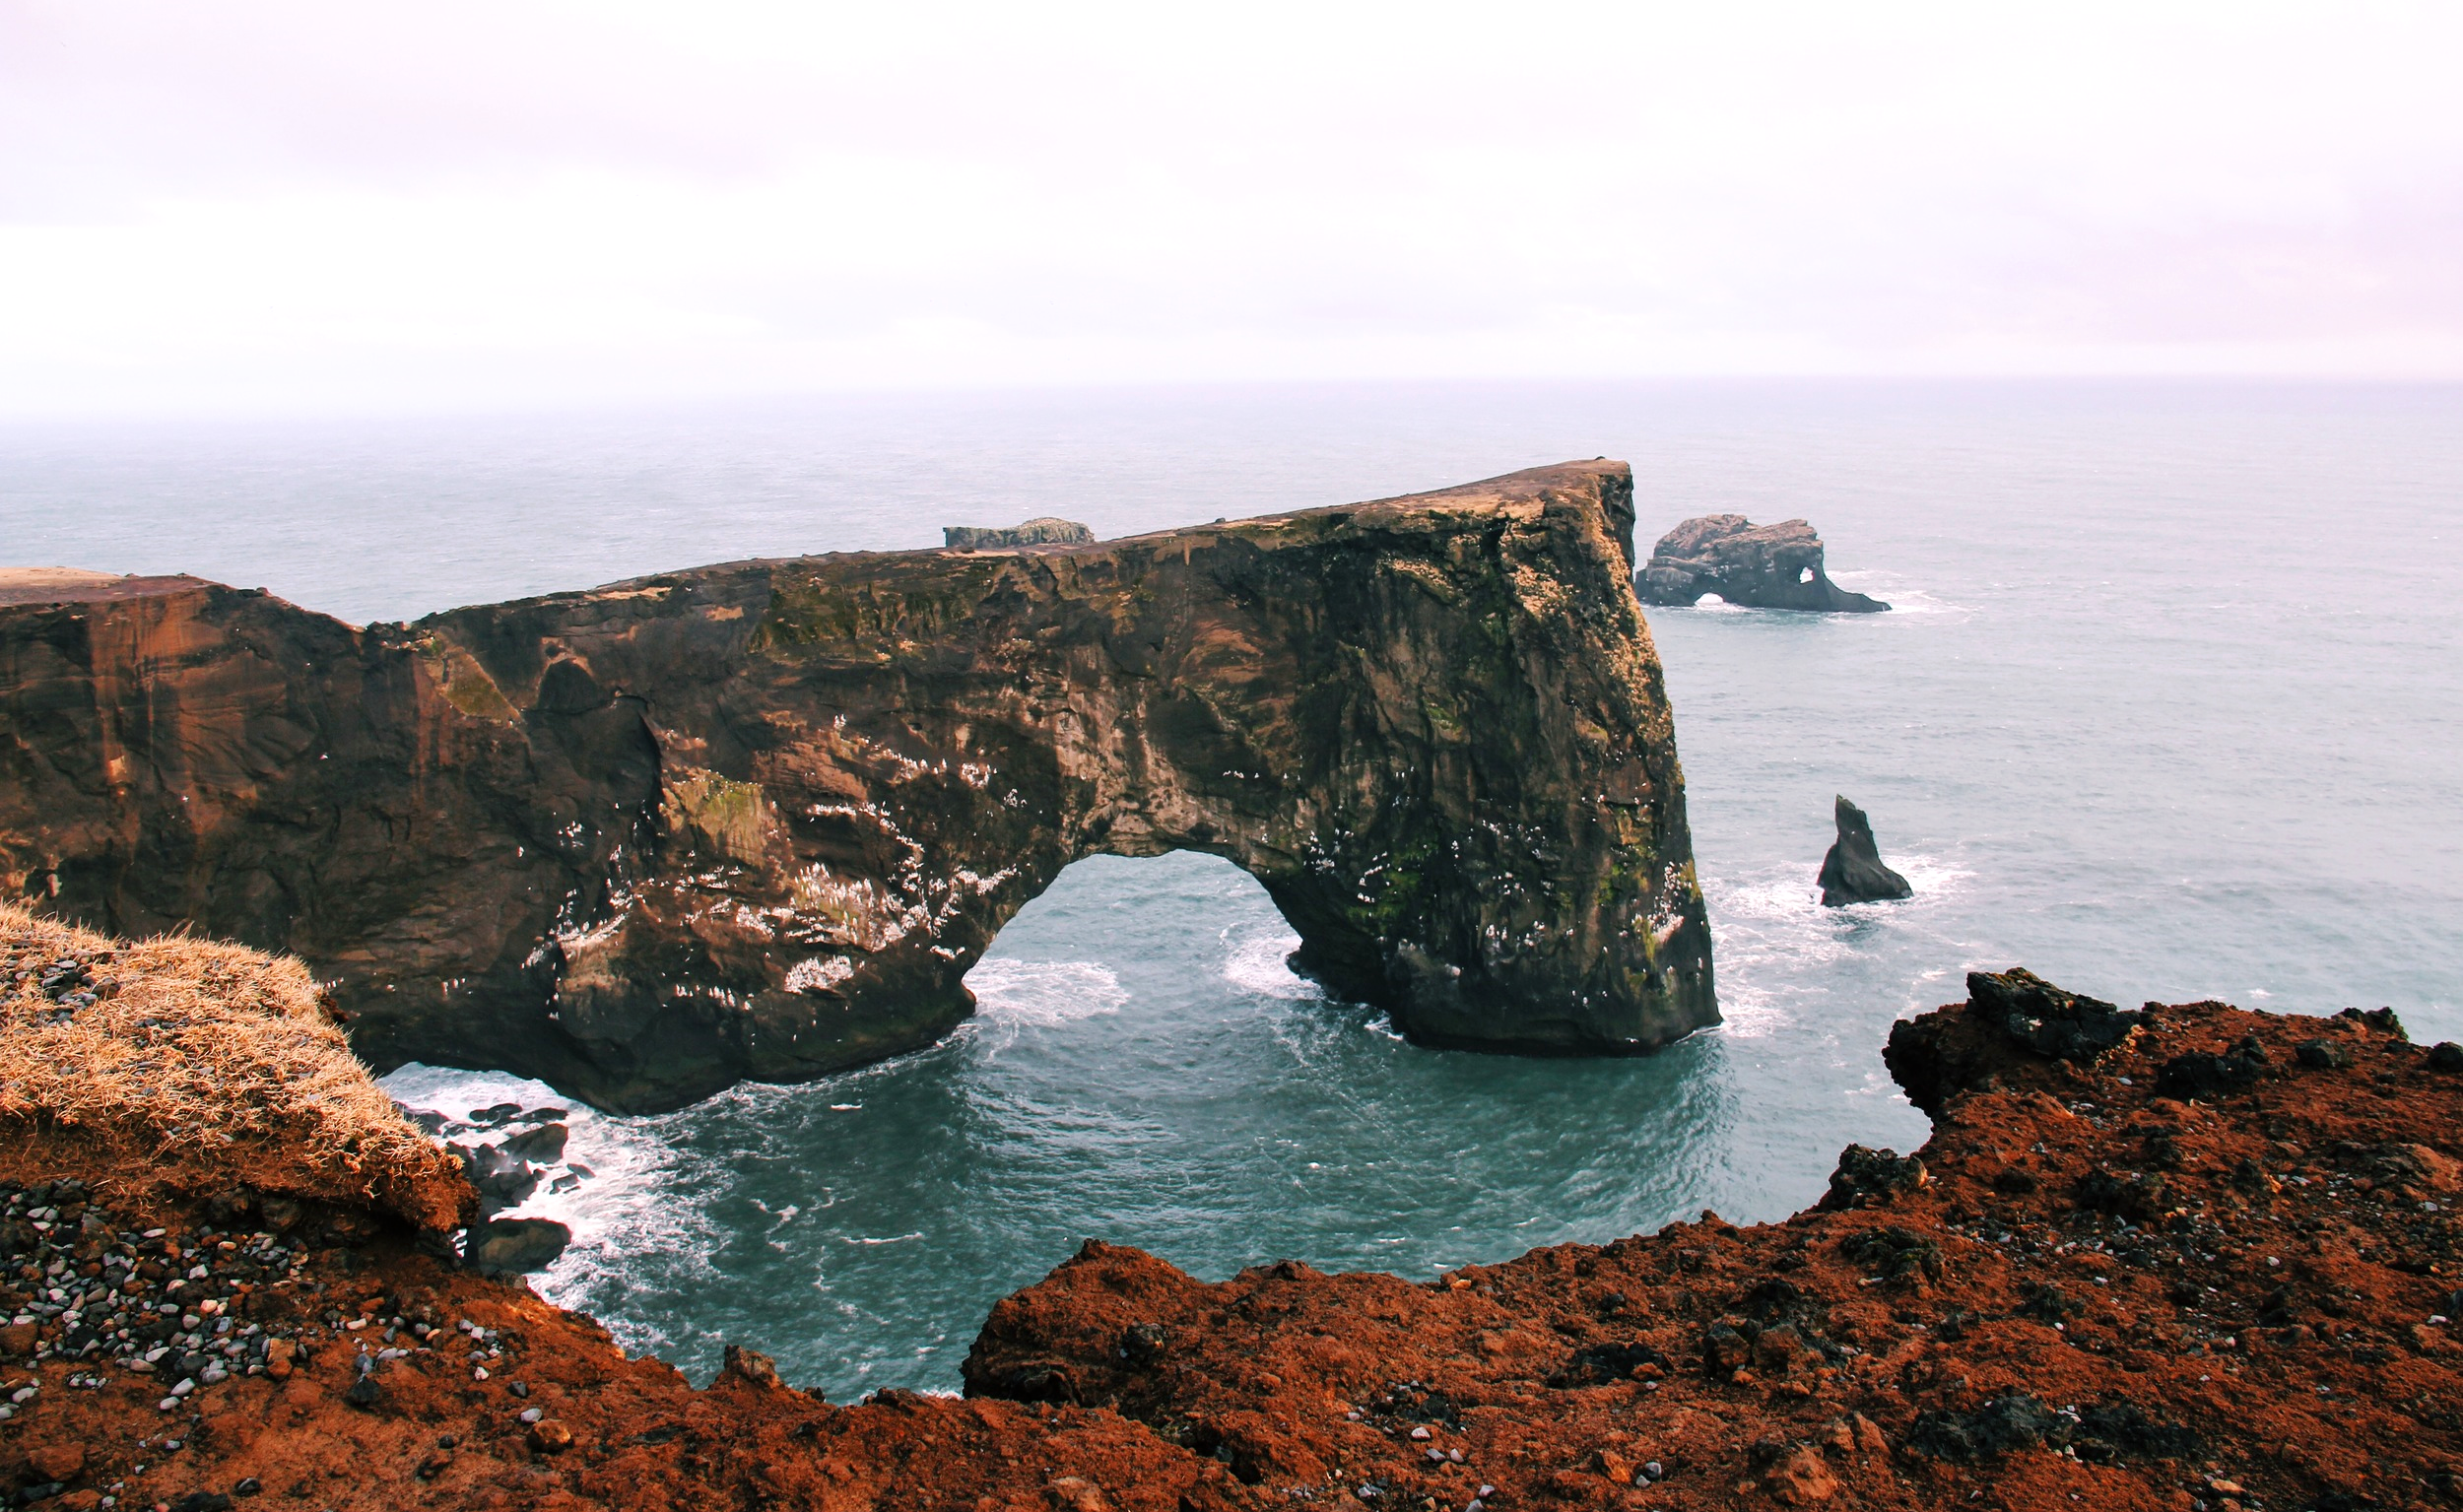 The view from Dyrhólaey lighthouse in the south of Iceland.